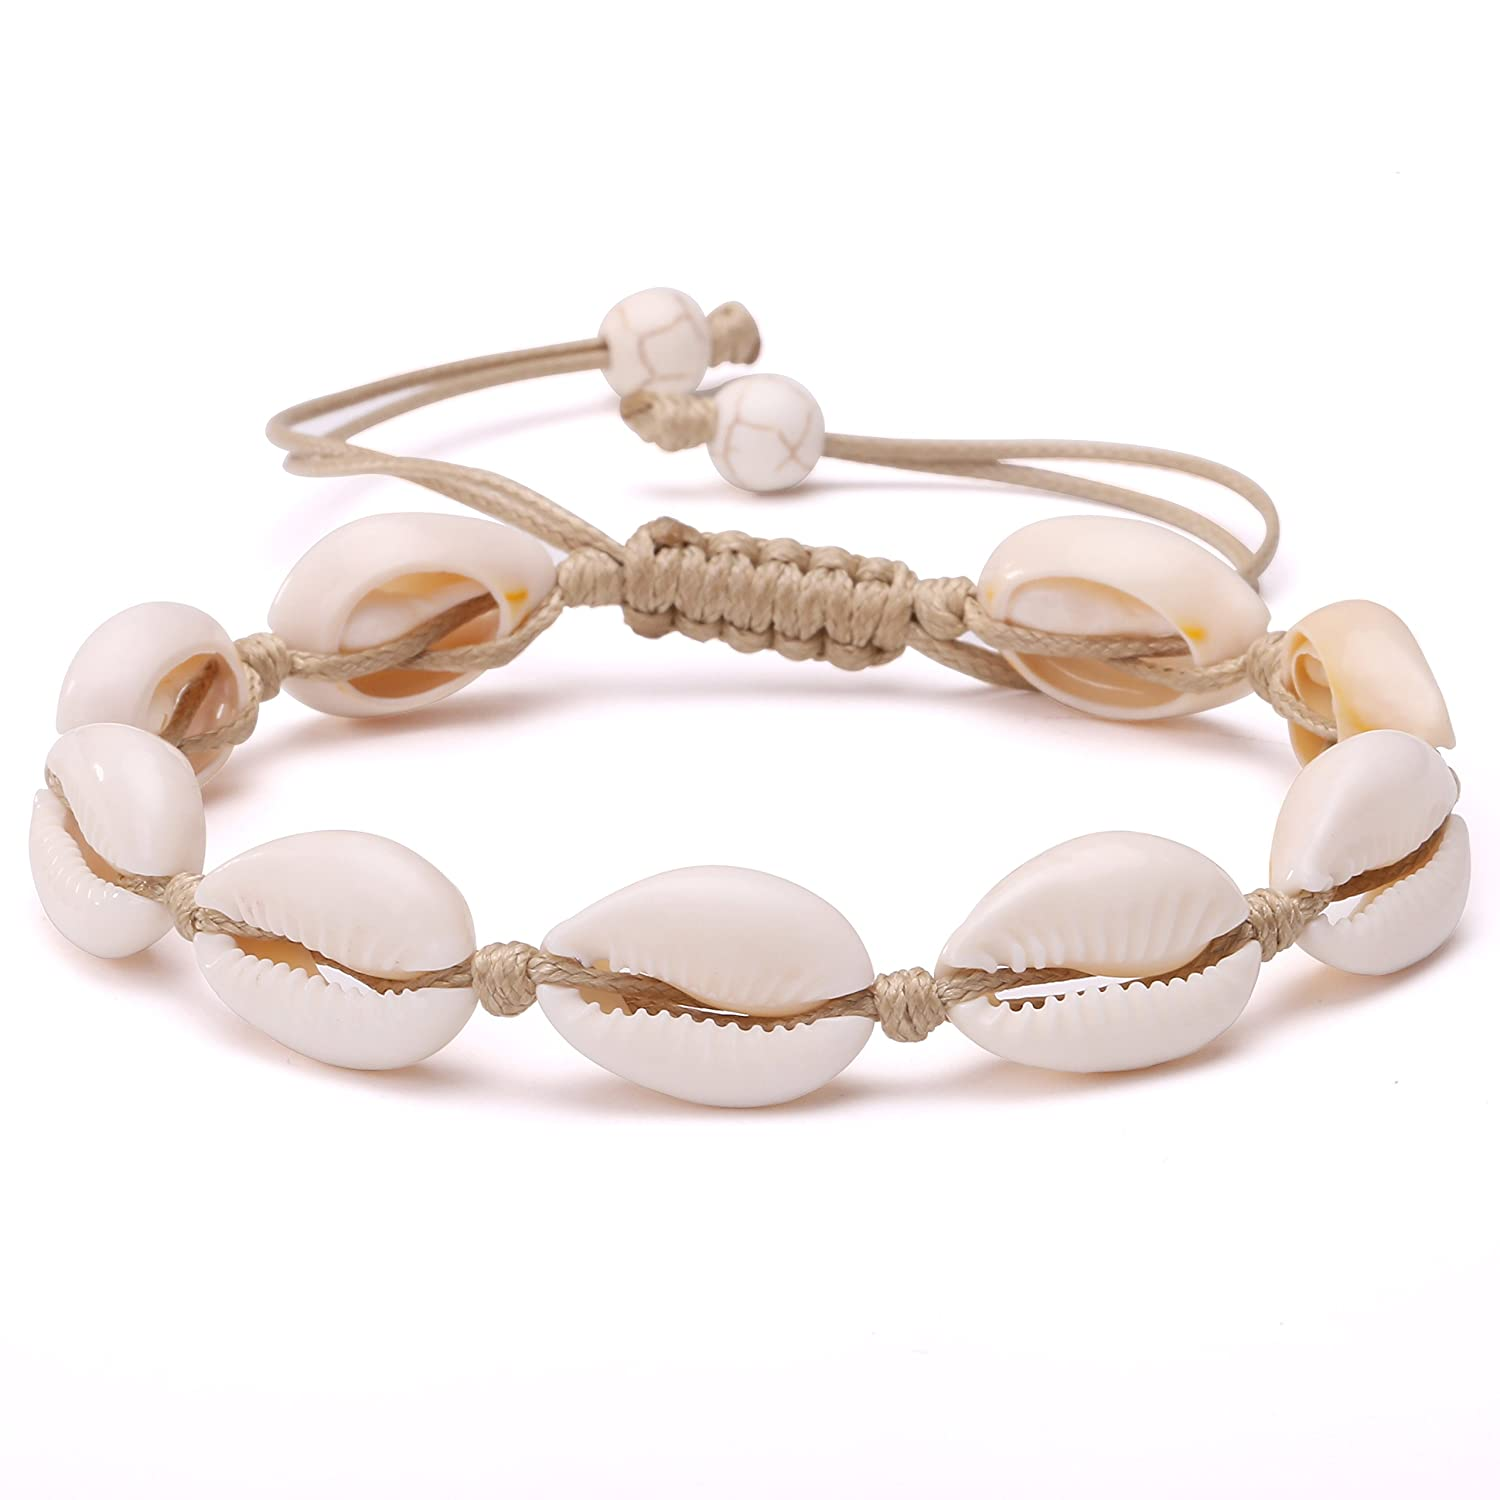 POTESSA Natural Cowrie Beads Shell Anklet Bracelet Handmade Beach Foot Jewelry Hawaiian Jamaican Style Adjustable for Women Unisex FPA-034-B